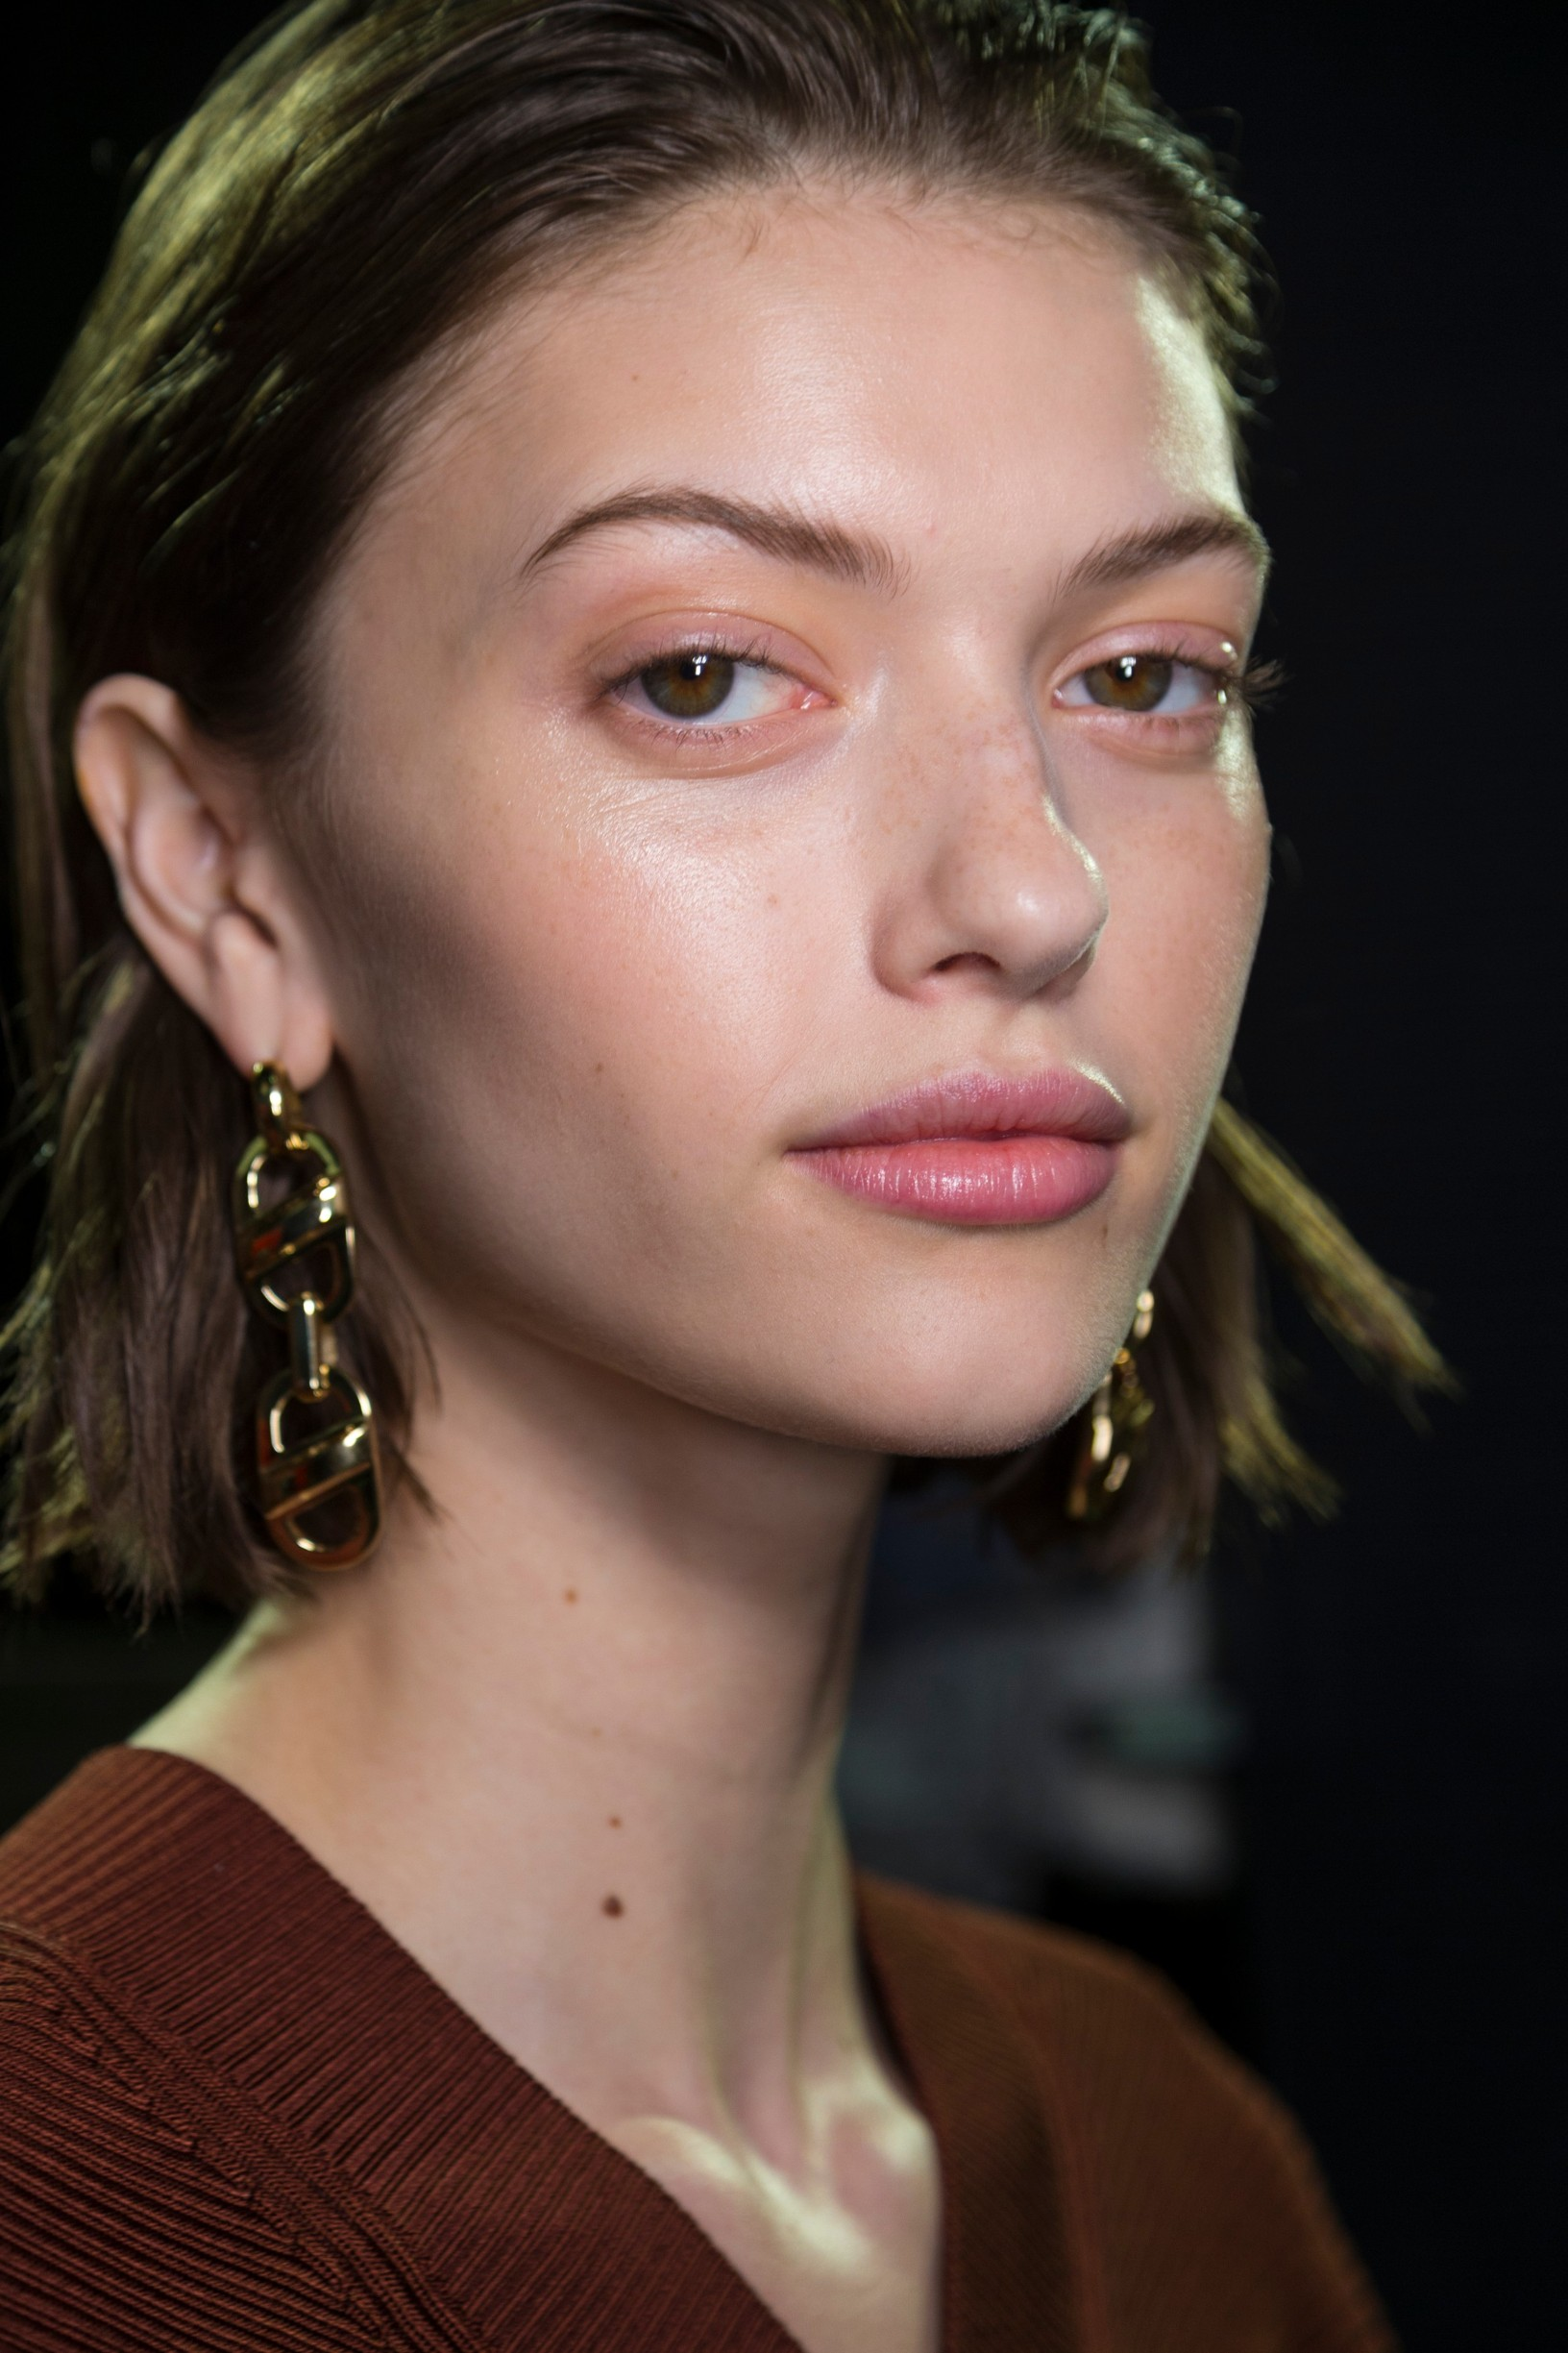 Boss Fall 2020 Ready-to-Wear CollectionFashion Show backstage at Milan Fashion Week,  Italy in February 2020.,Image: 501132238, License: Rights-managed, Restrictions: , Model Release: no, Credit line: Rick Gold / Capital pictures / Profimedia